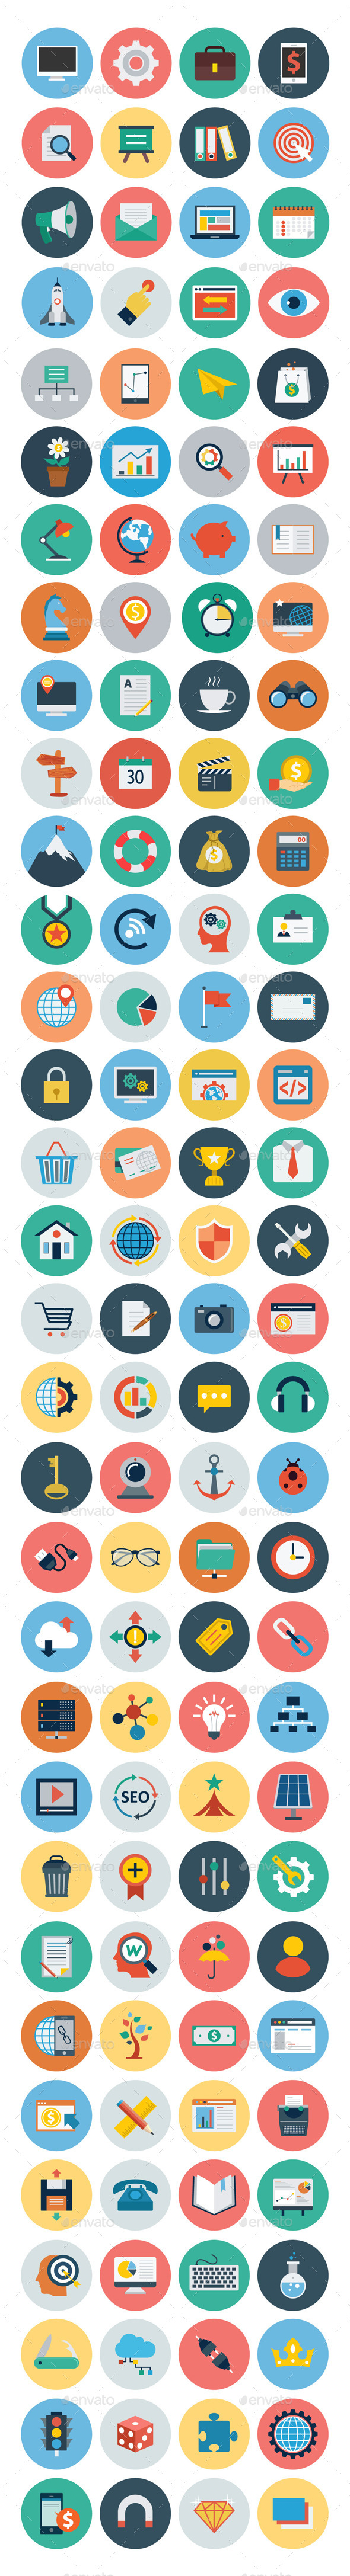 125+ Seo and Marketing Flat Icons - Web Icons